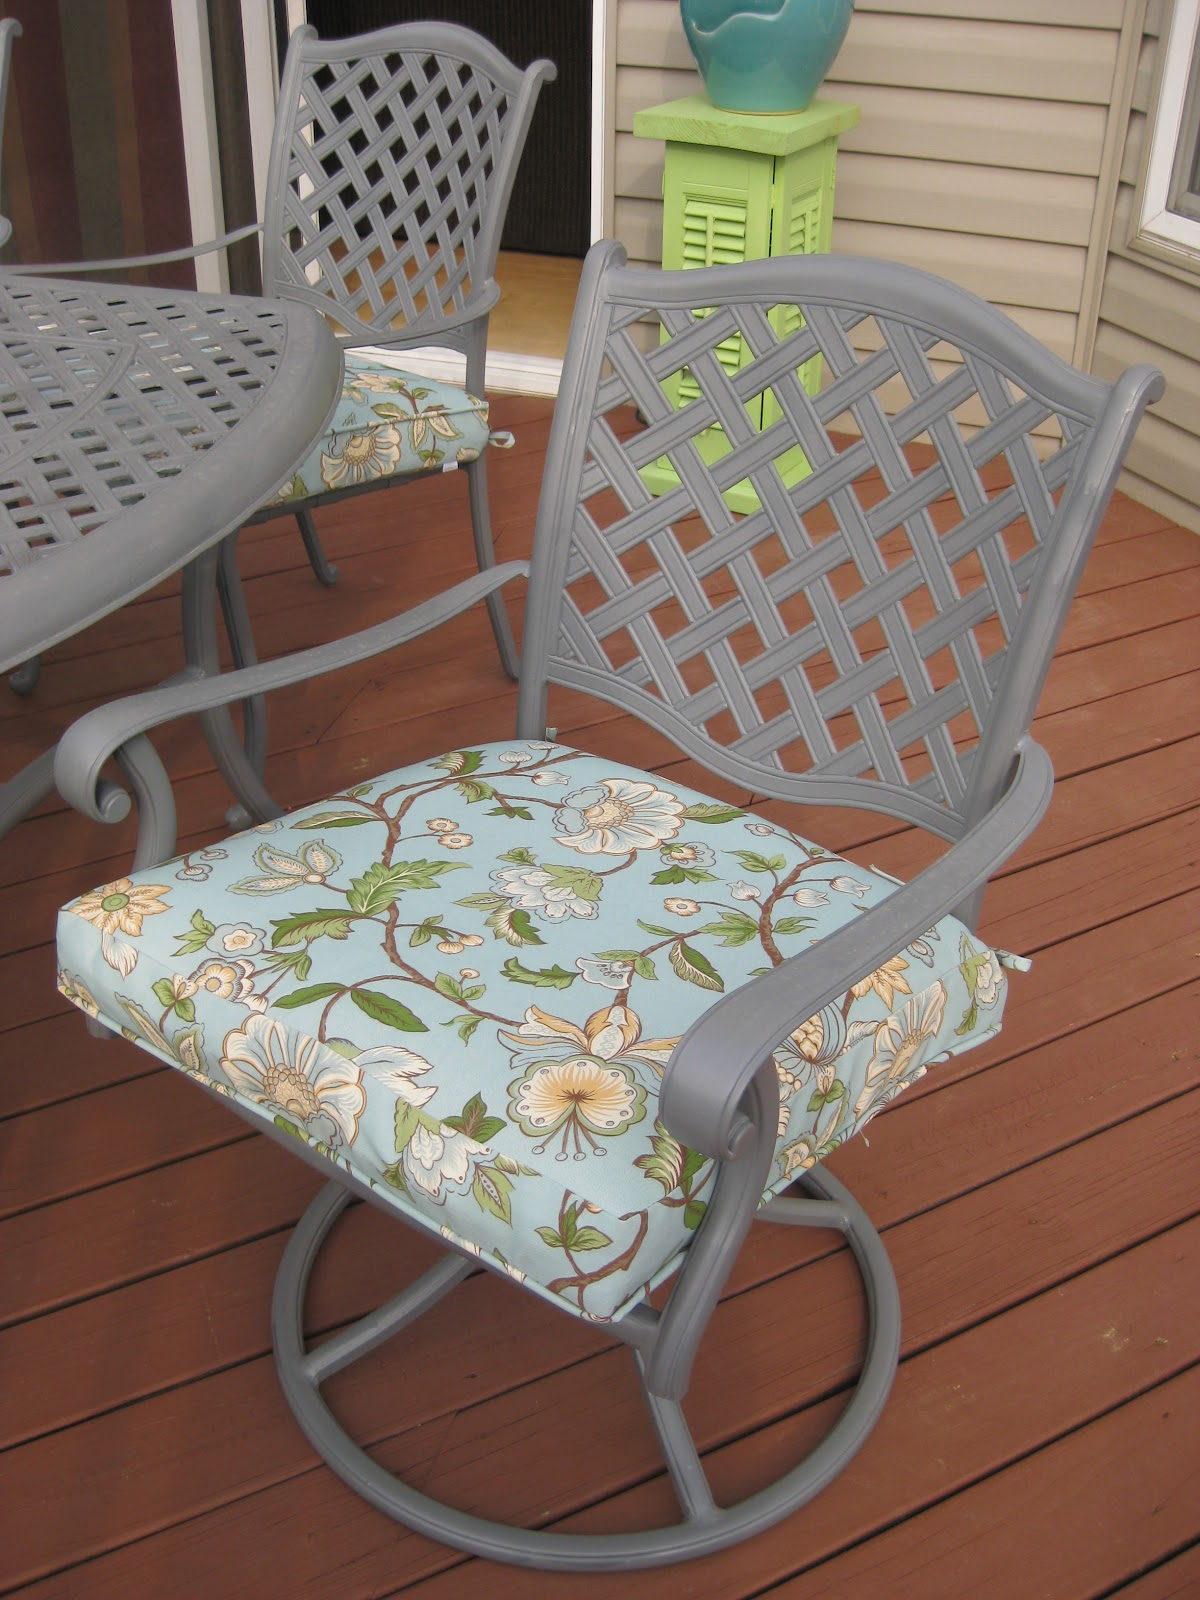 Patio Furniture Redo Using Spray Paint By Amy U0026 Chris